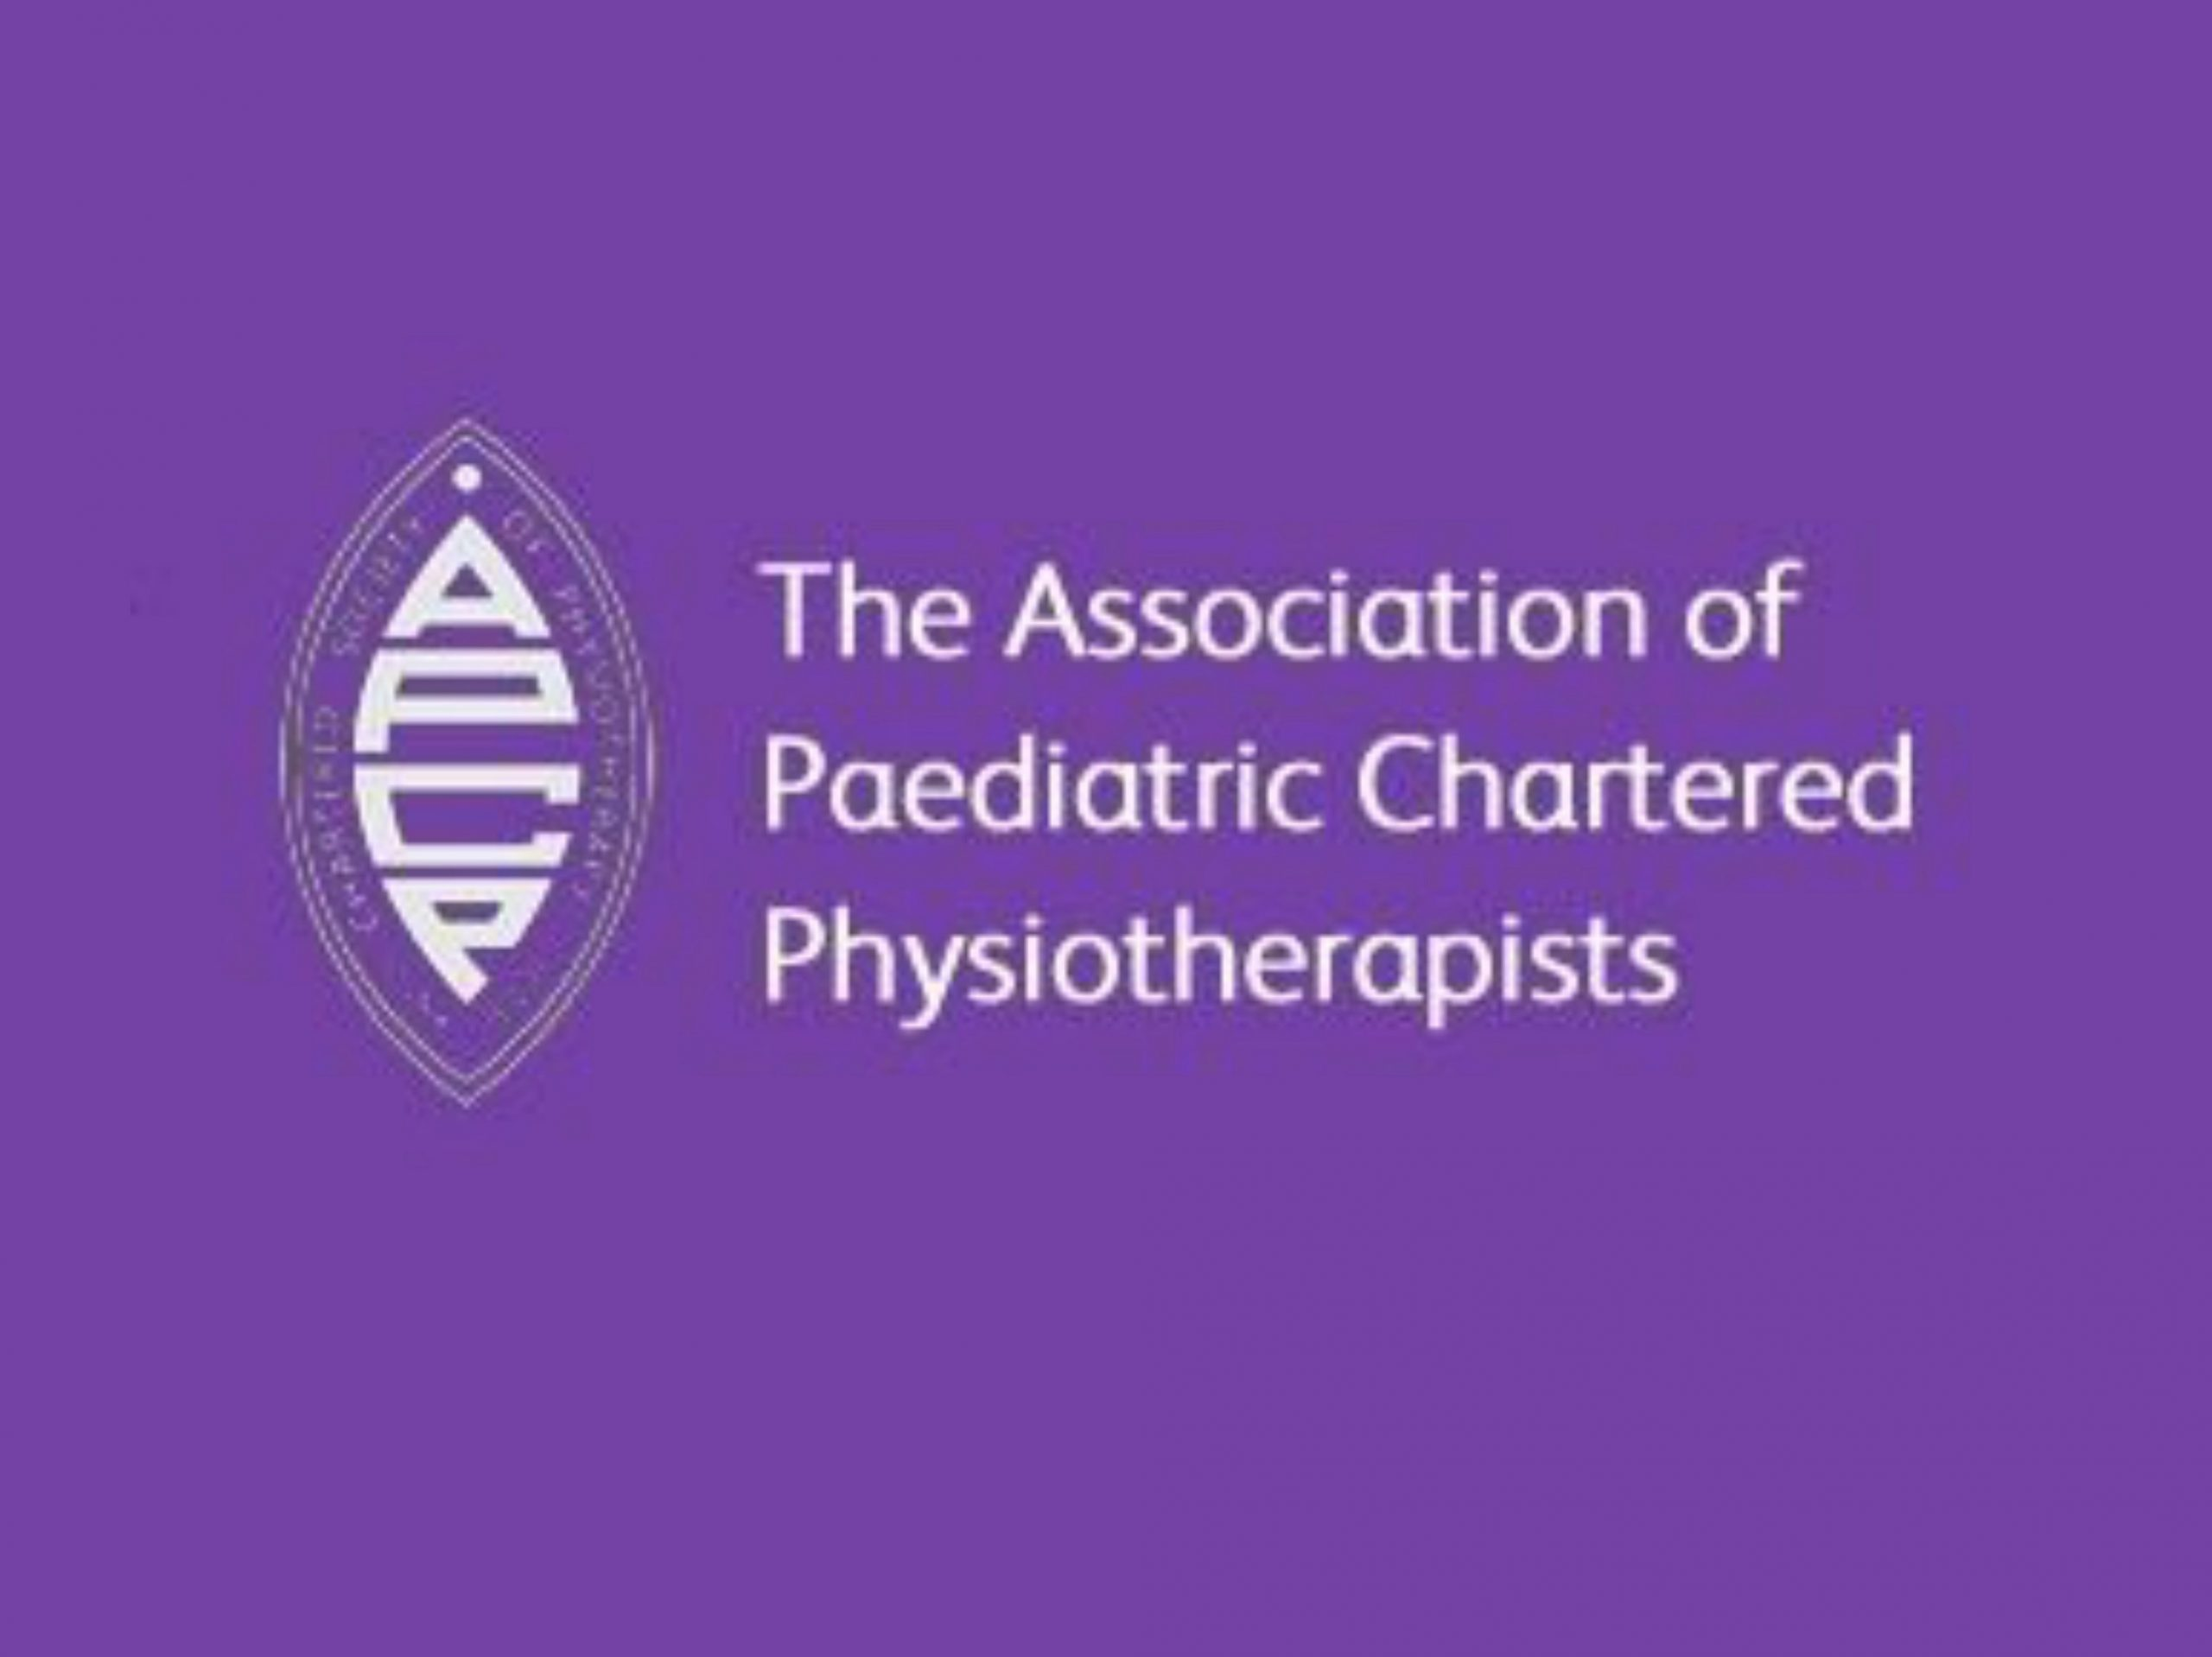 The Association of Paediatric Chartered Physiotherapists